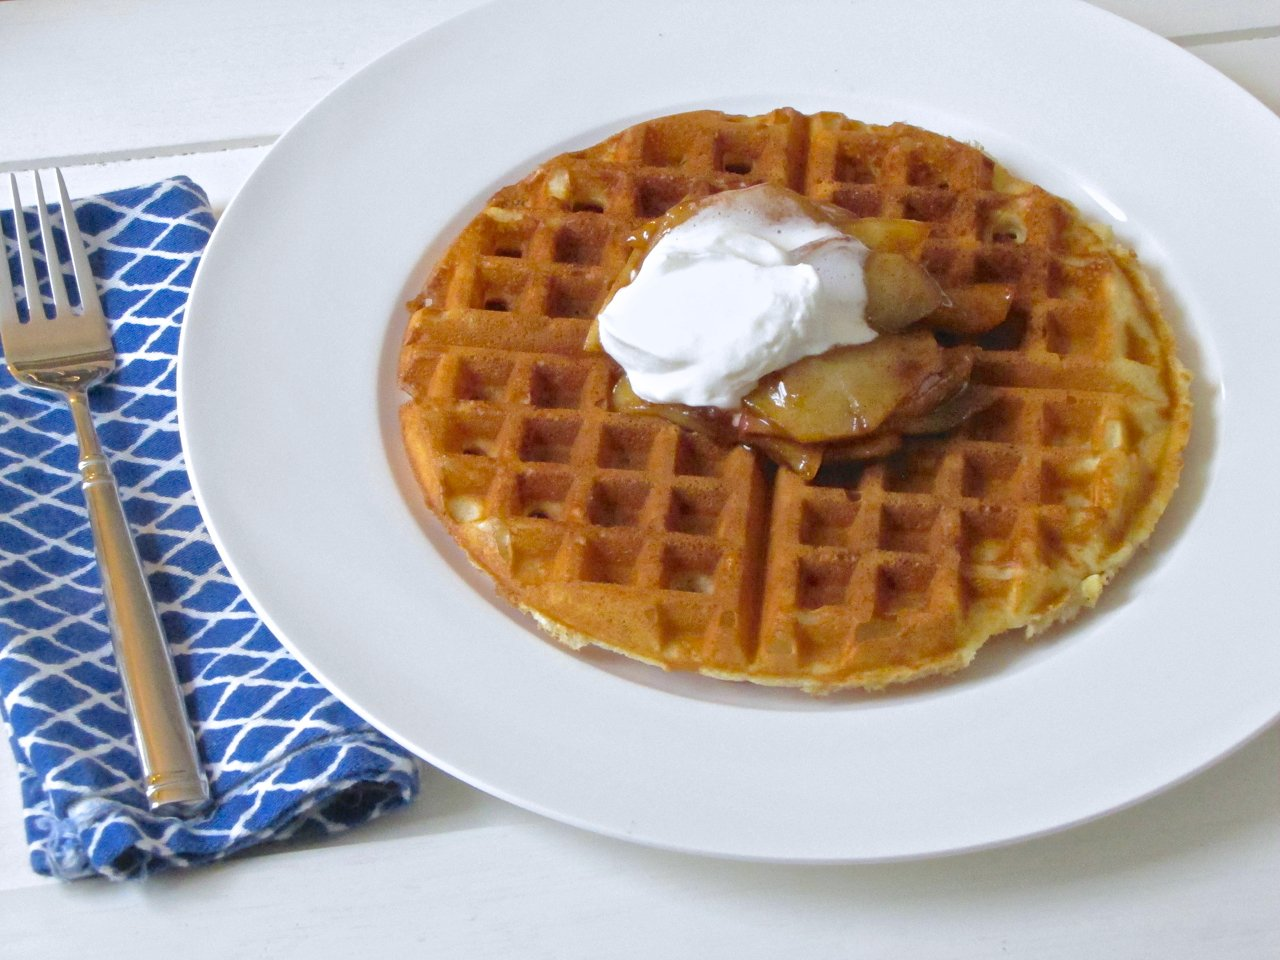 Waffles of Insane Greatness with Caramelized Apples